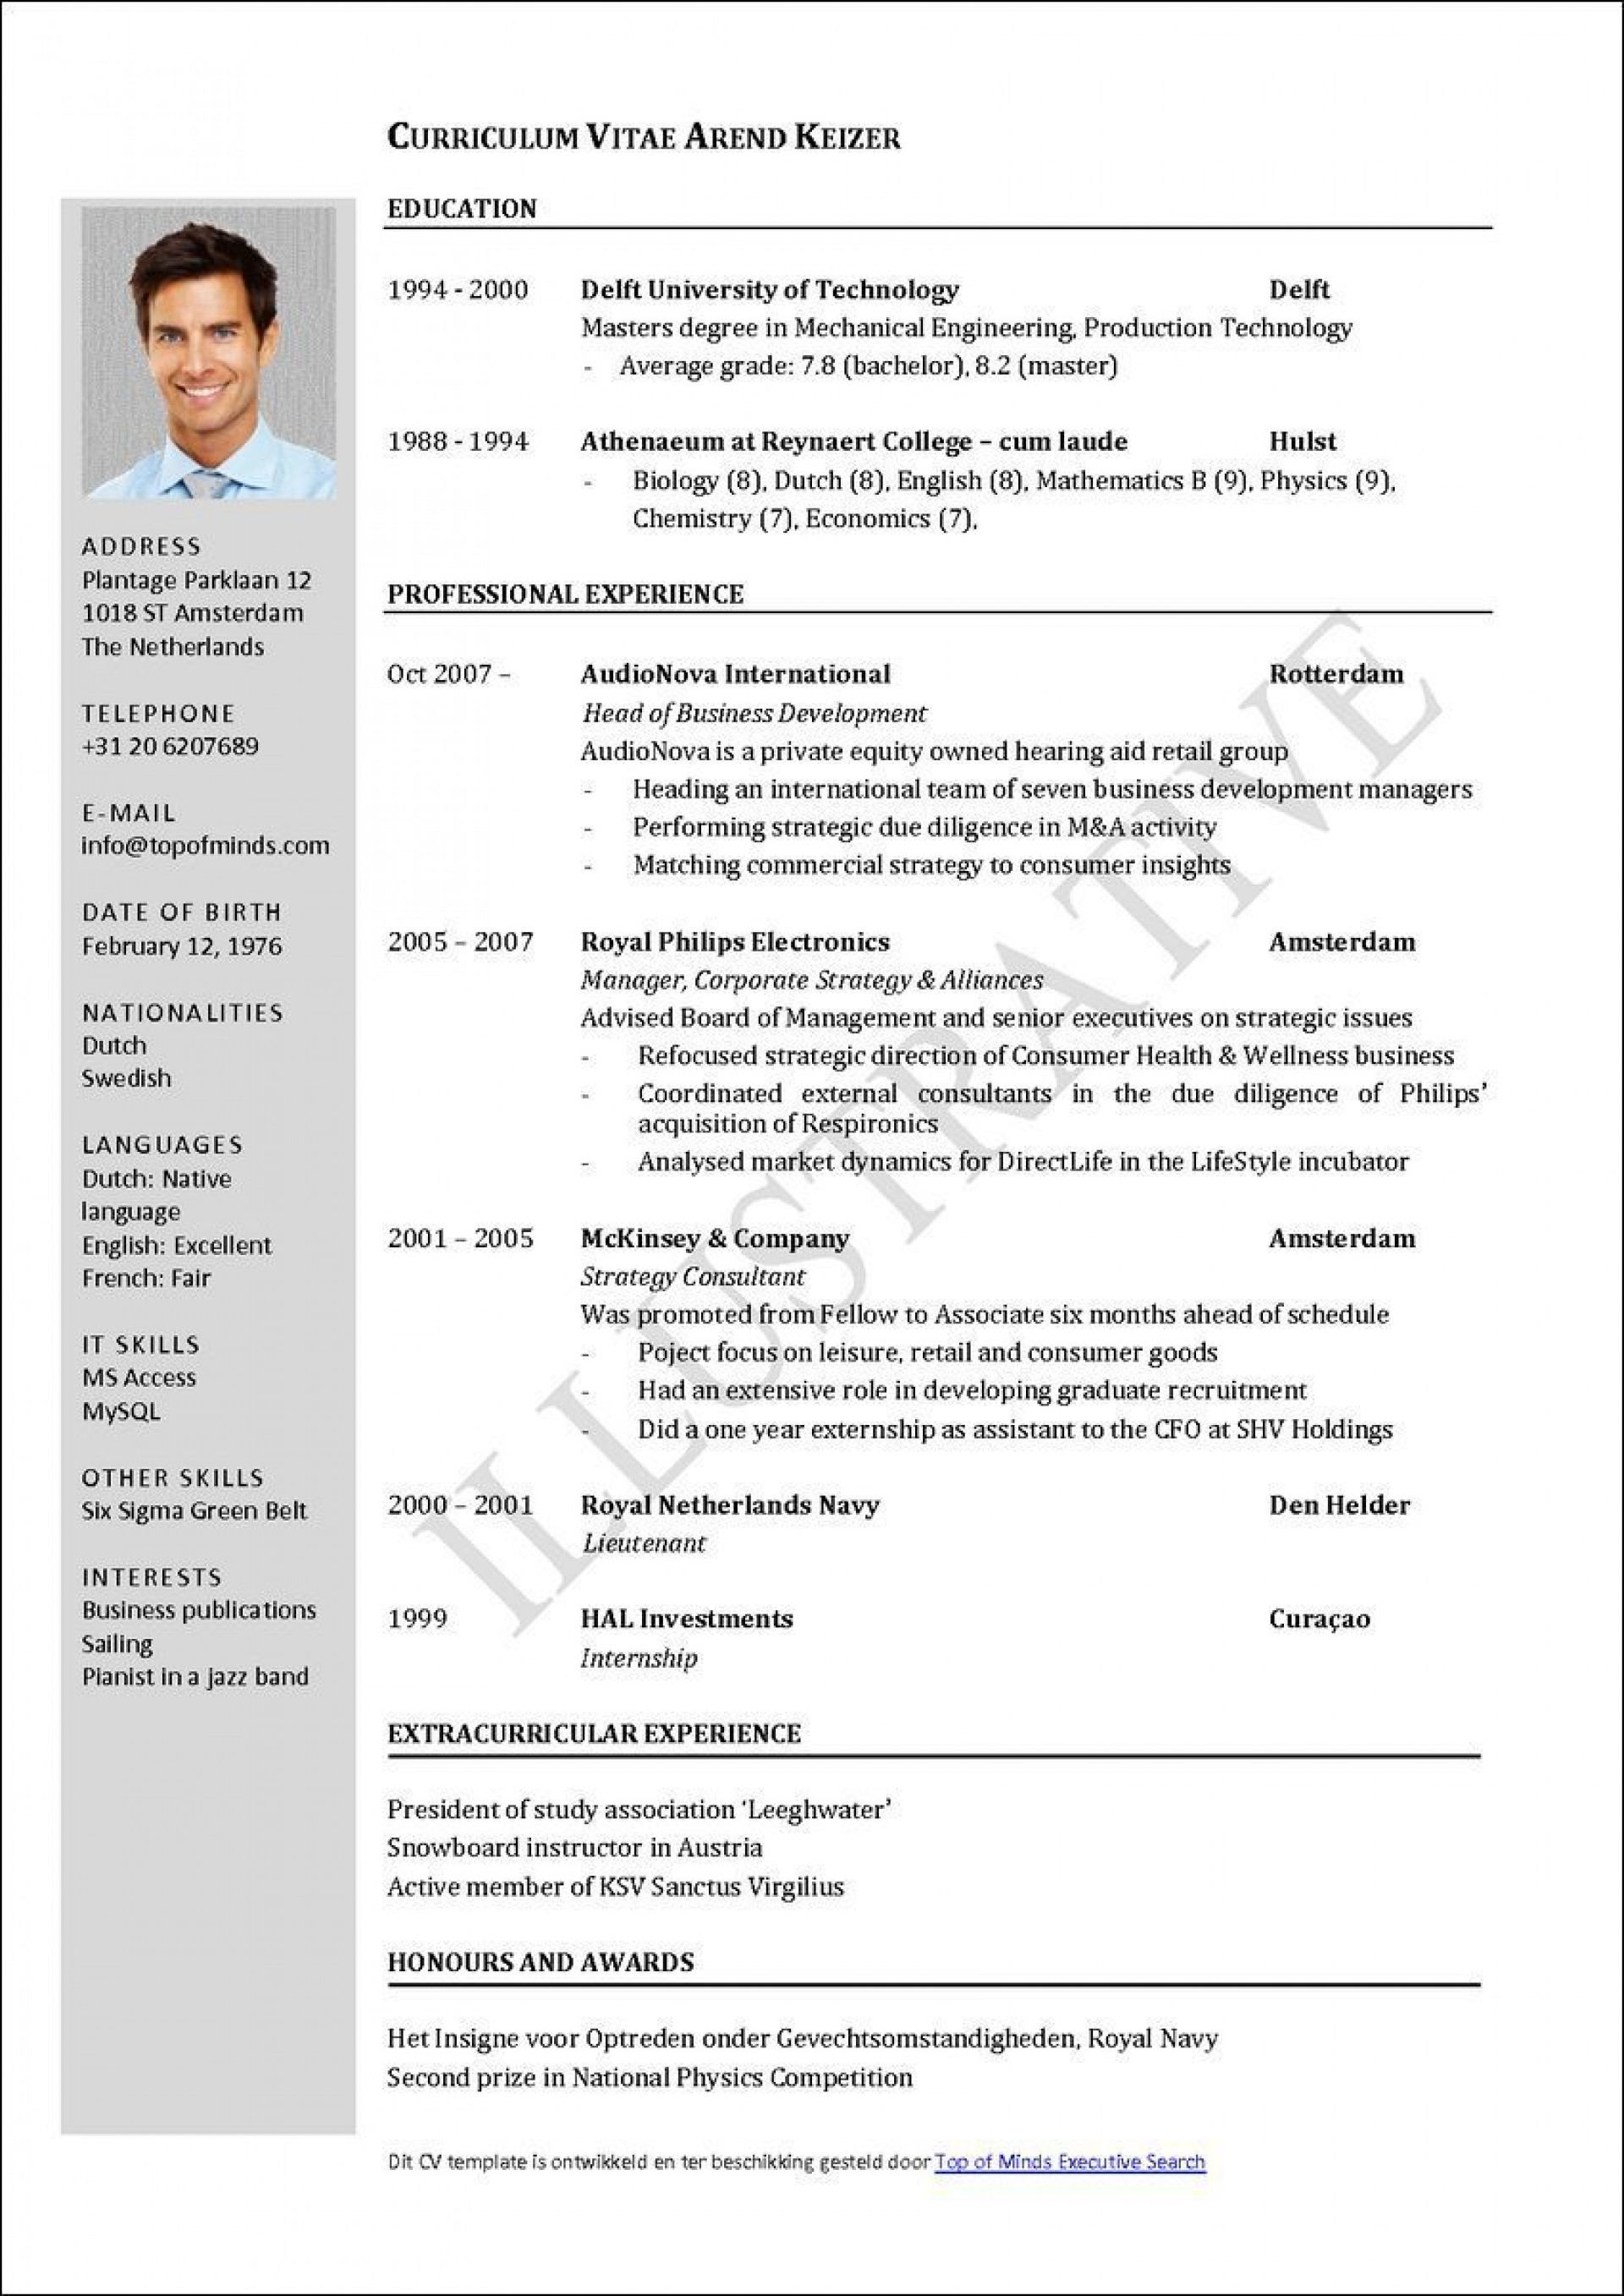 002 Unique Curriculum Vitae Template Free Photo  Download South Africa Format Pdf Sample1920